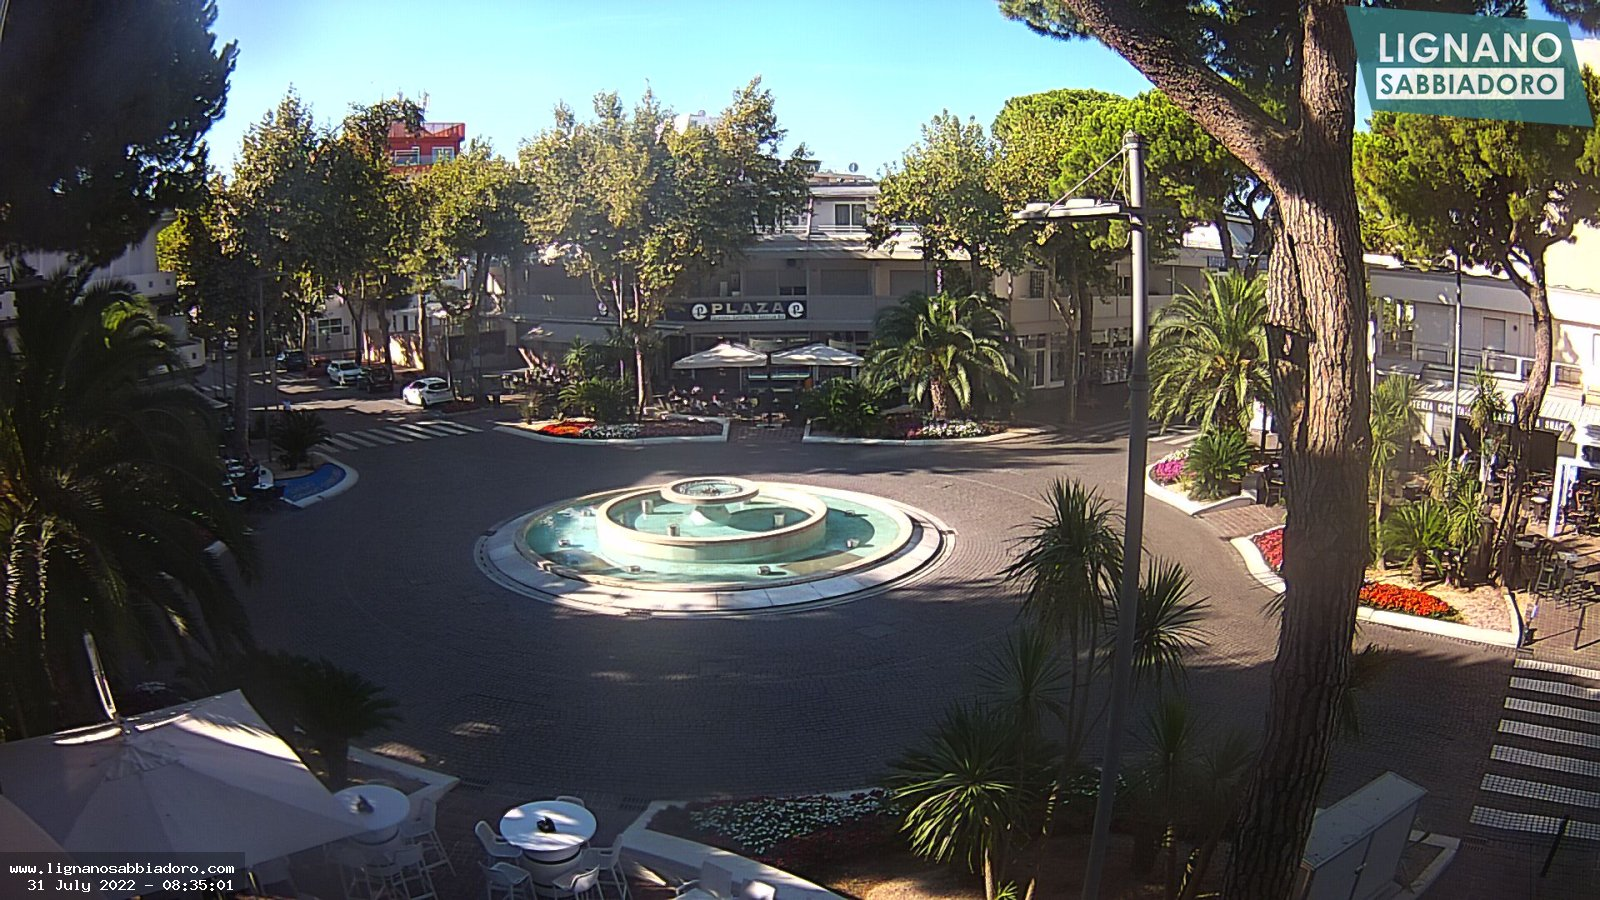 Webcam live streaming in the city centre